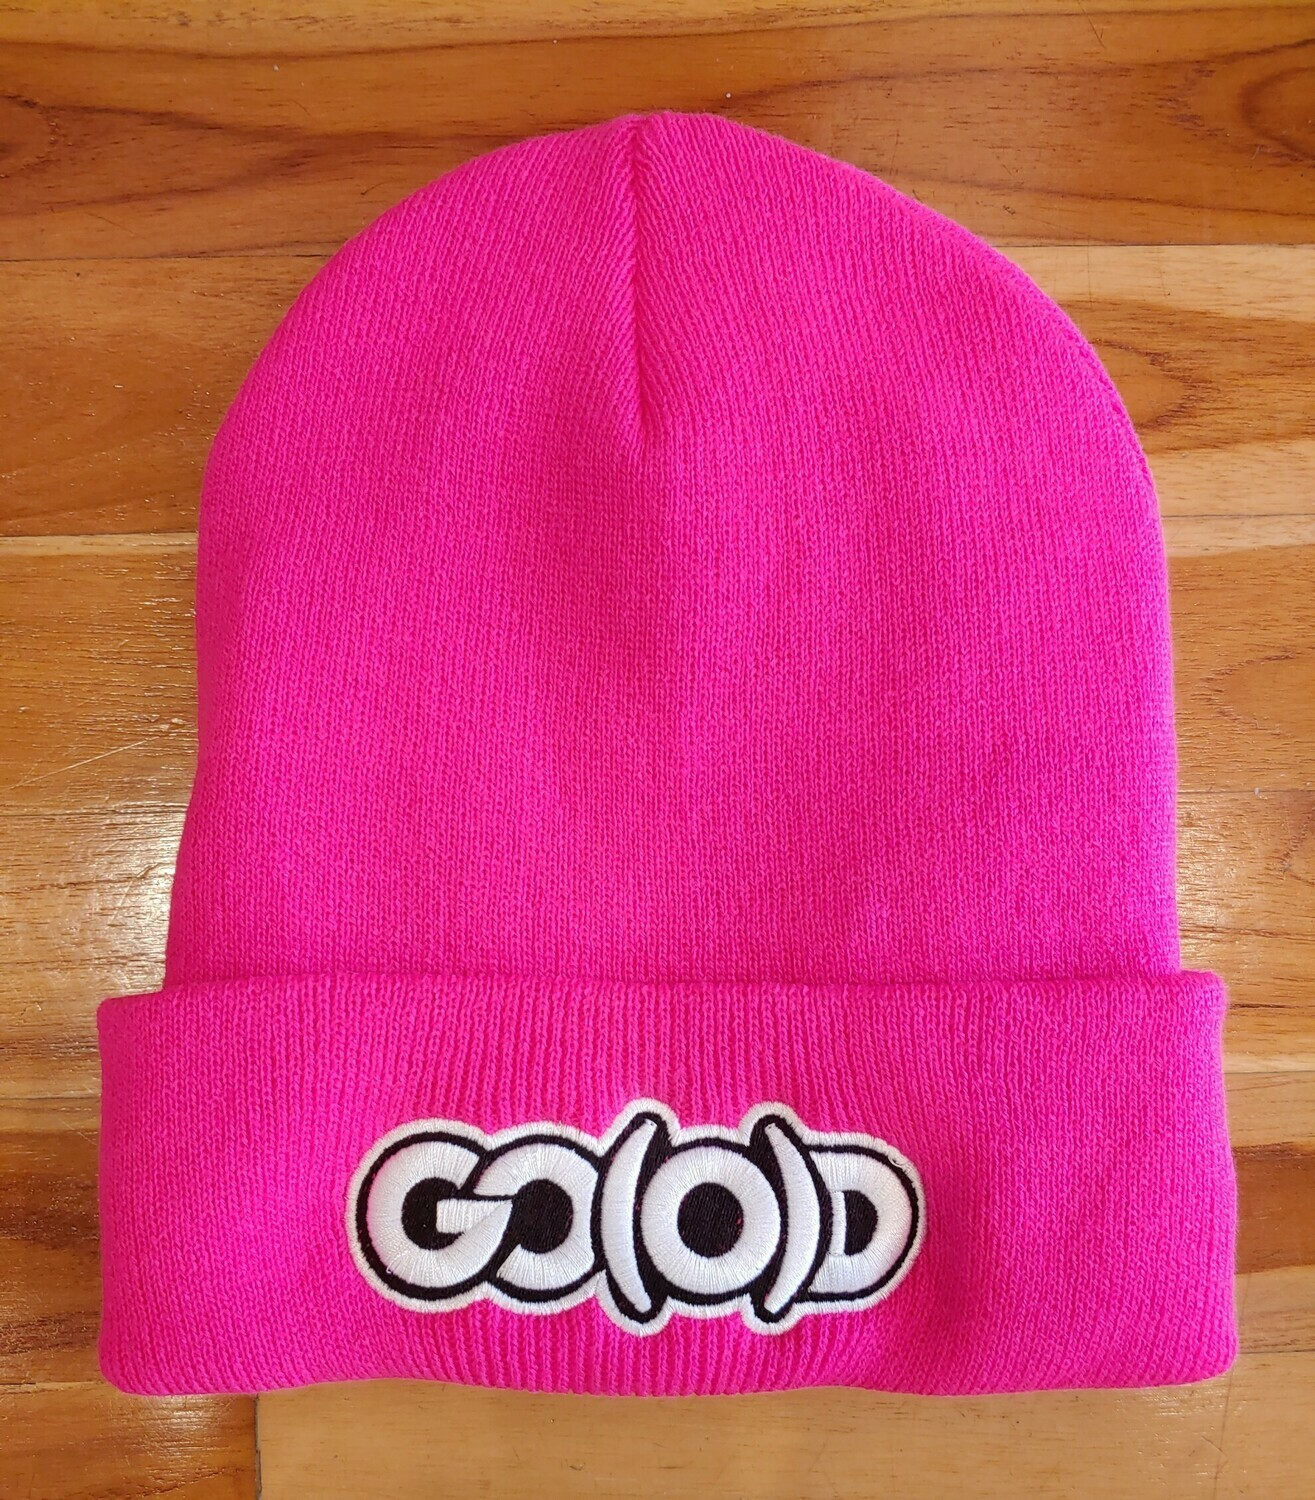 GO(O)D Beanie-hot pink/white